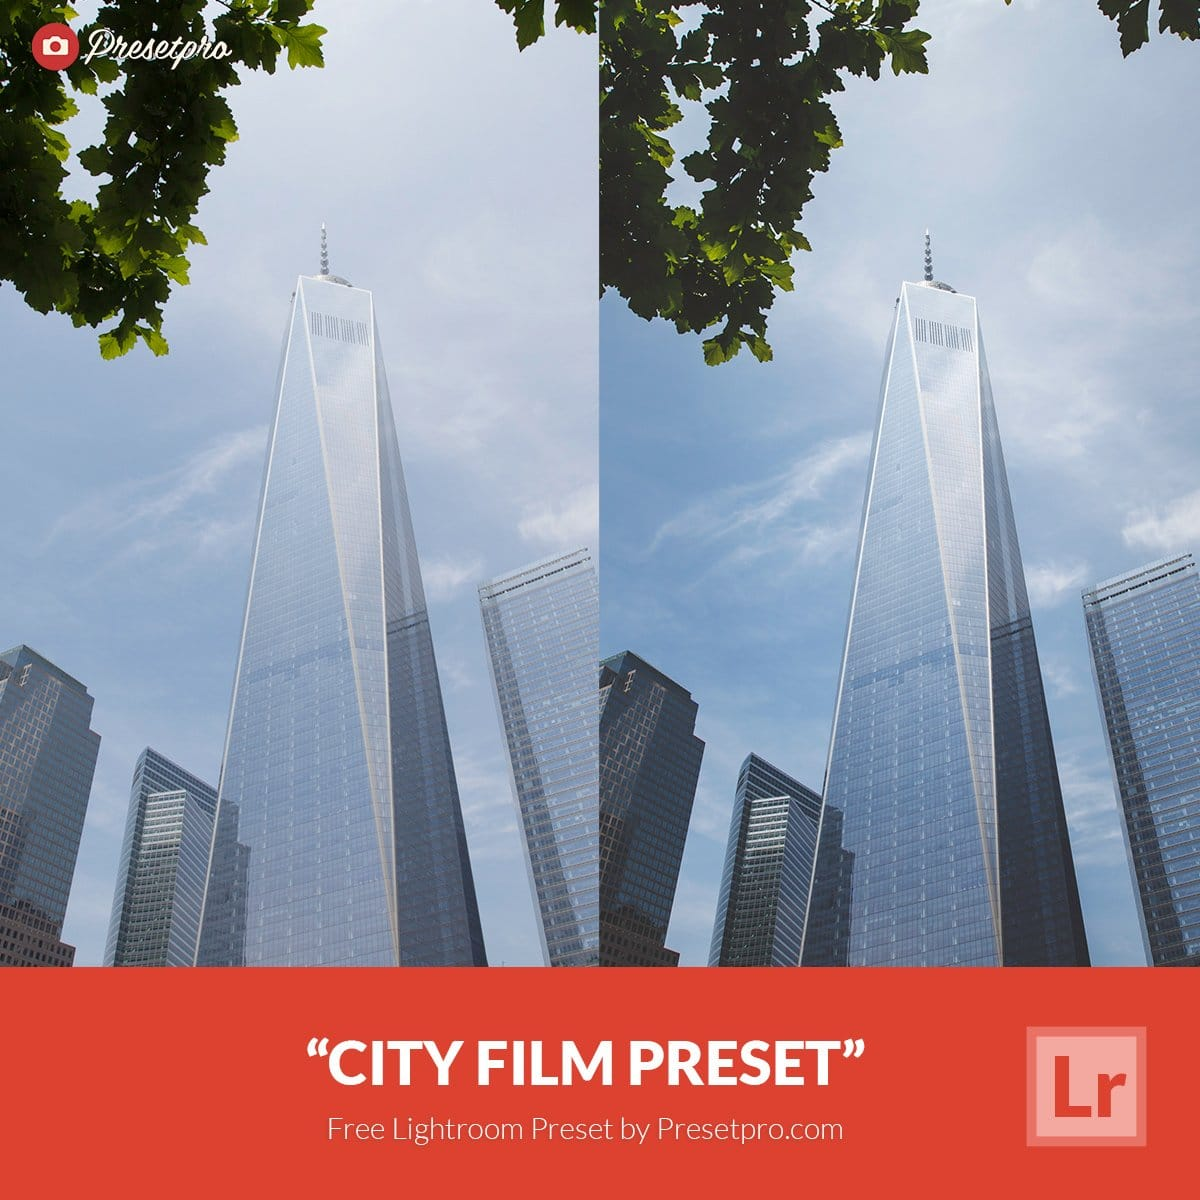 Free-Lightroom-Preset-City-Film-Presetpro.com